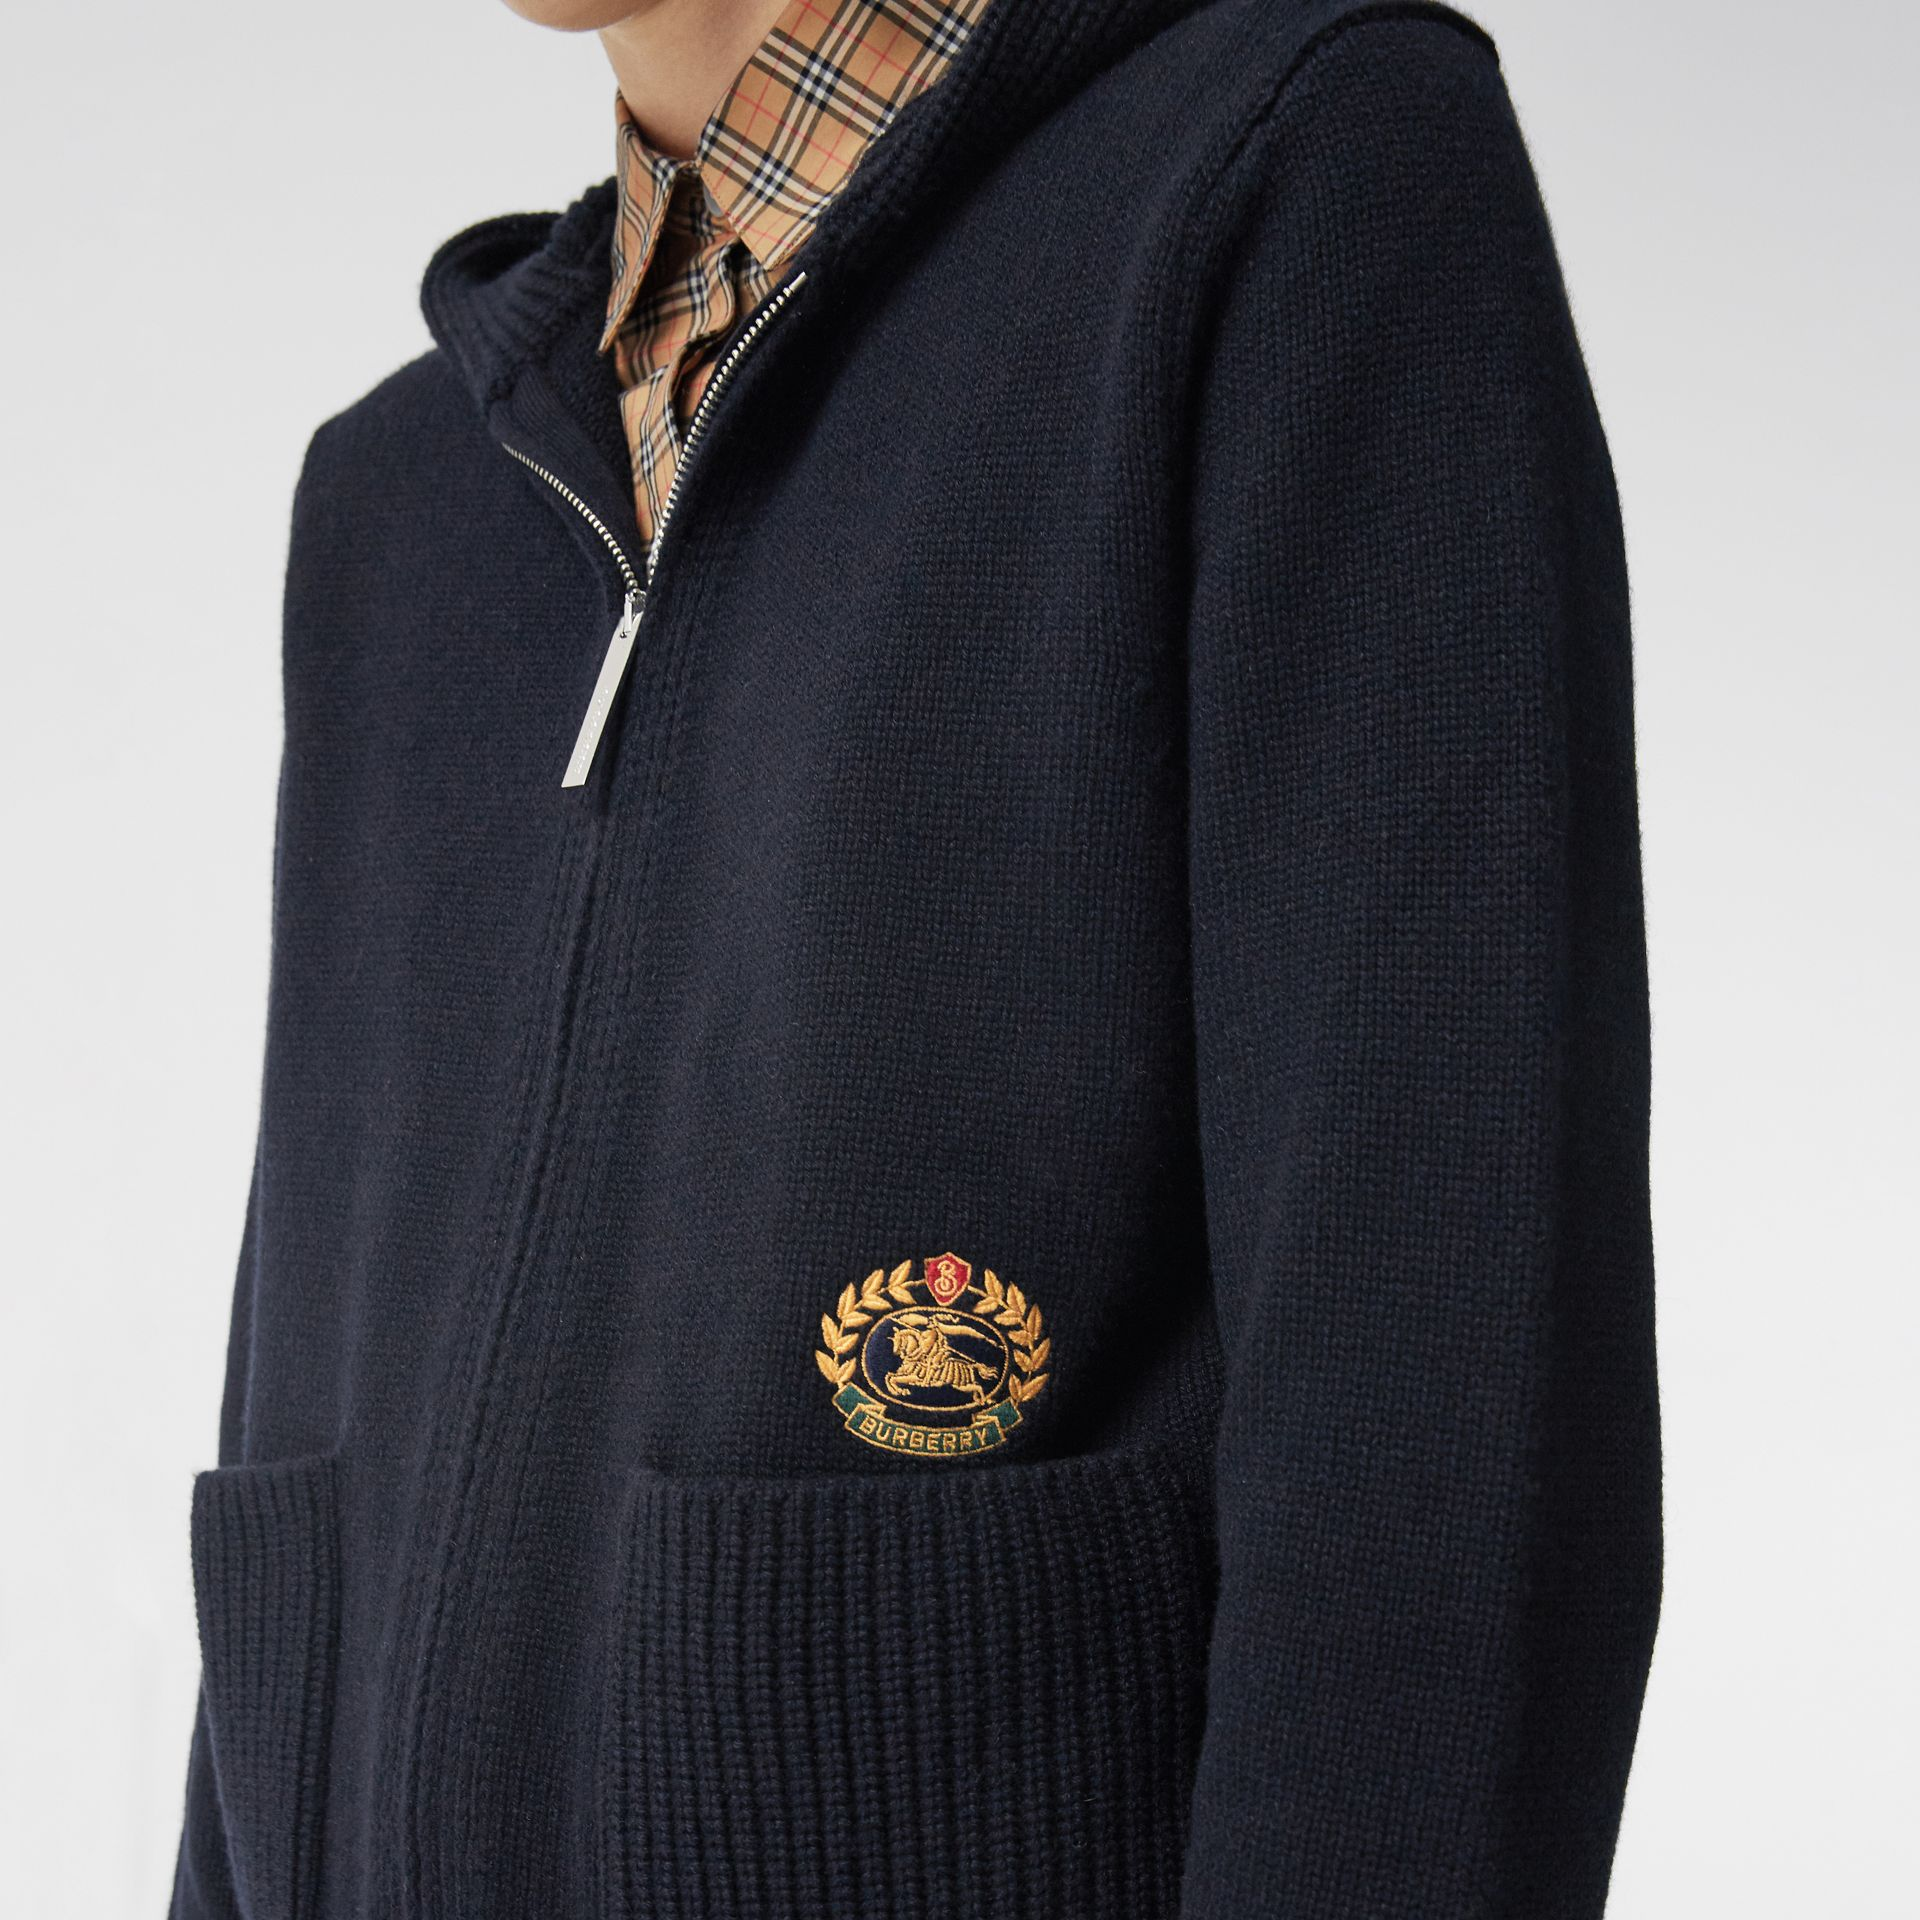 Embroidered Crest Cashmere Hooded Top in Navy - Women | Burberry - gallery image 1